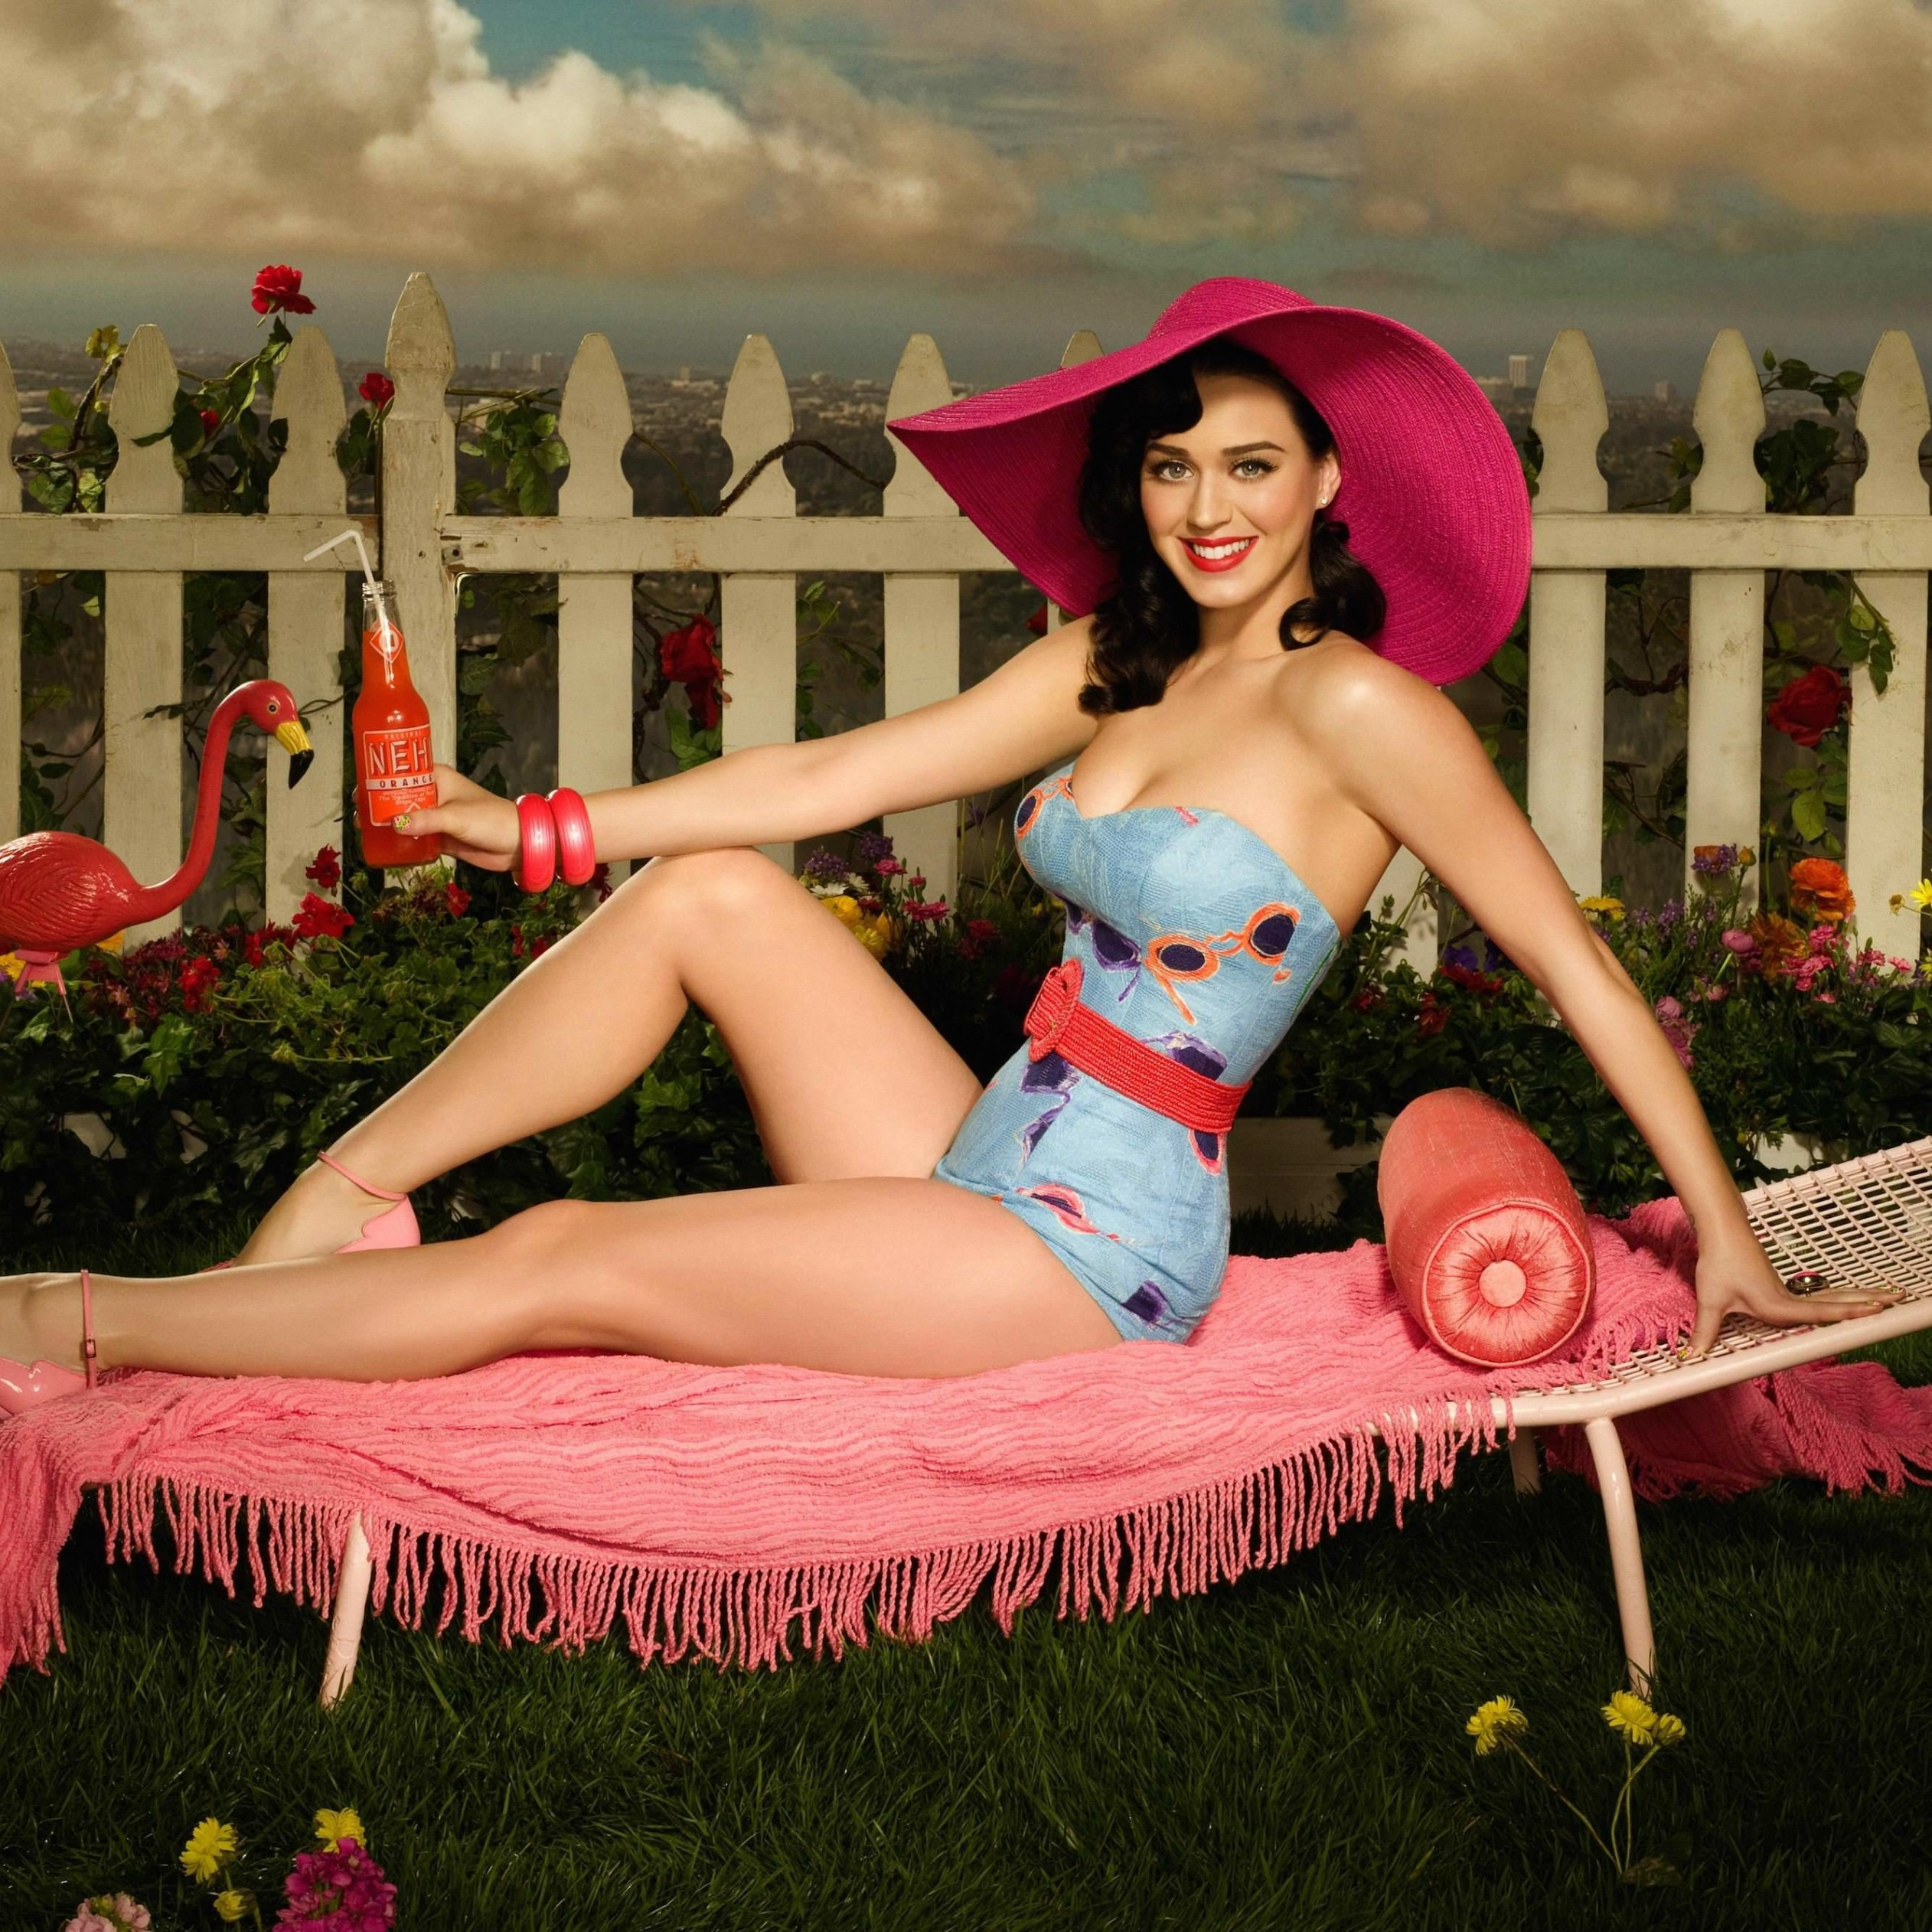 Katy Perry Lying On Chair Body Figure Wallpaper for Apple iPad Air